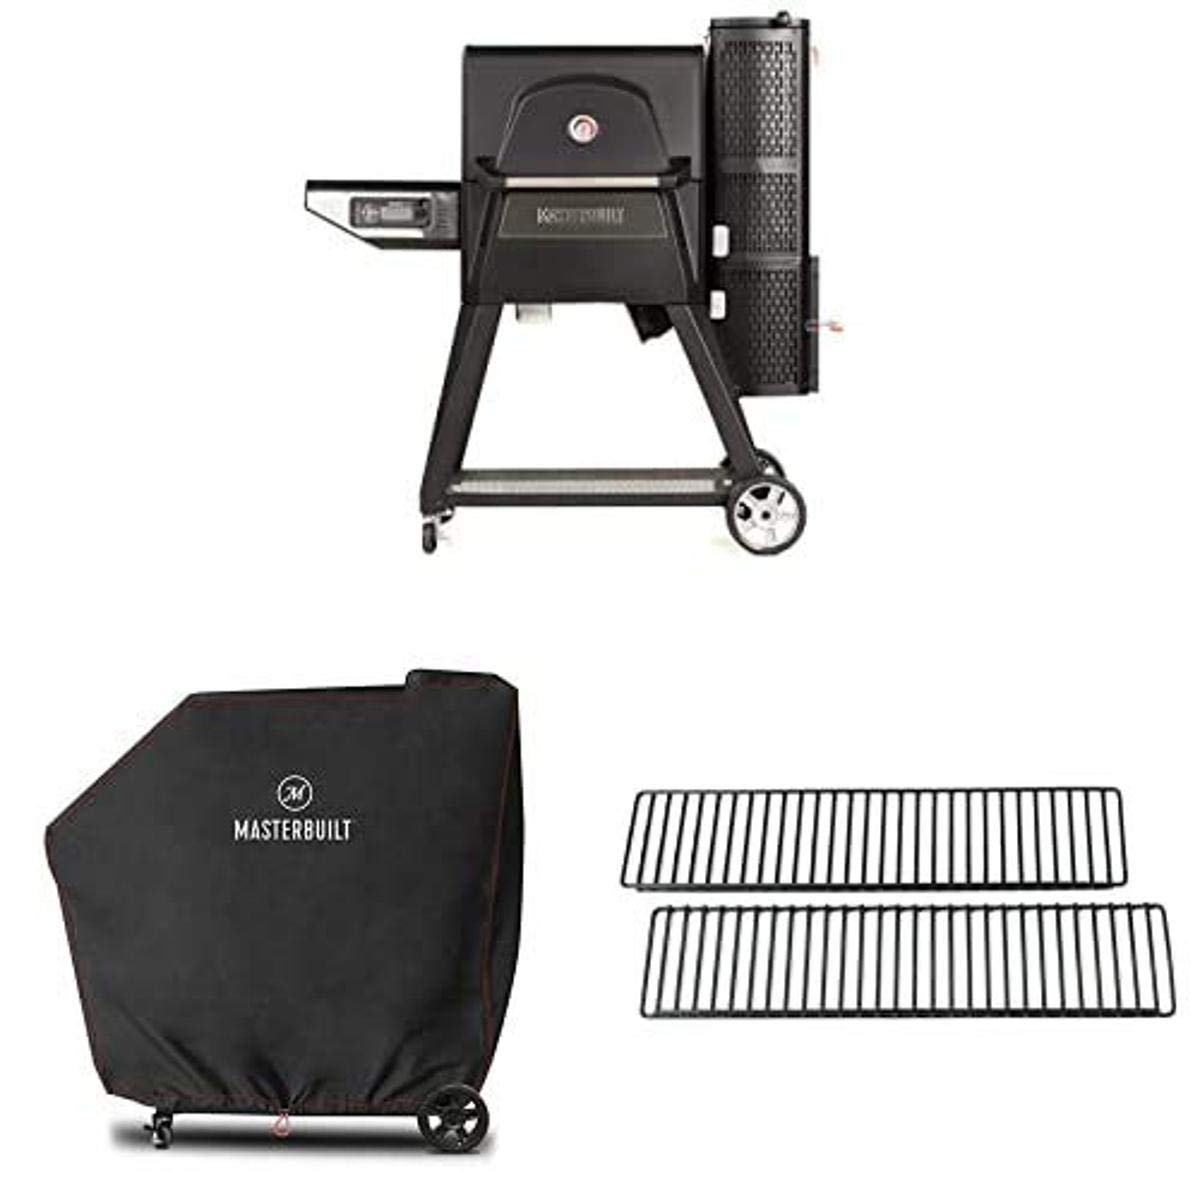 Masterbuilt Gravity Series 560 Digital Charcoal Grill + Smoker with 2 Warming Rack and Grill Cover Bundle